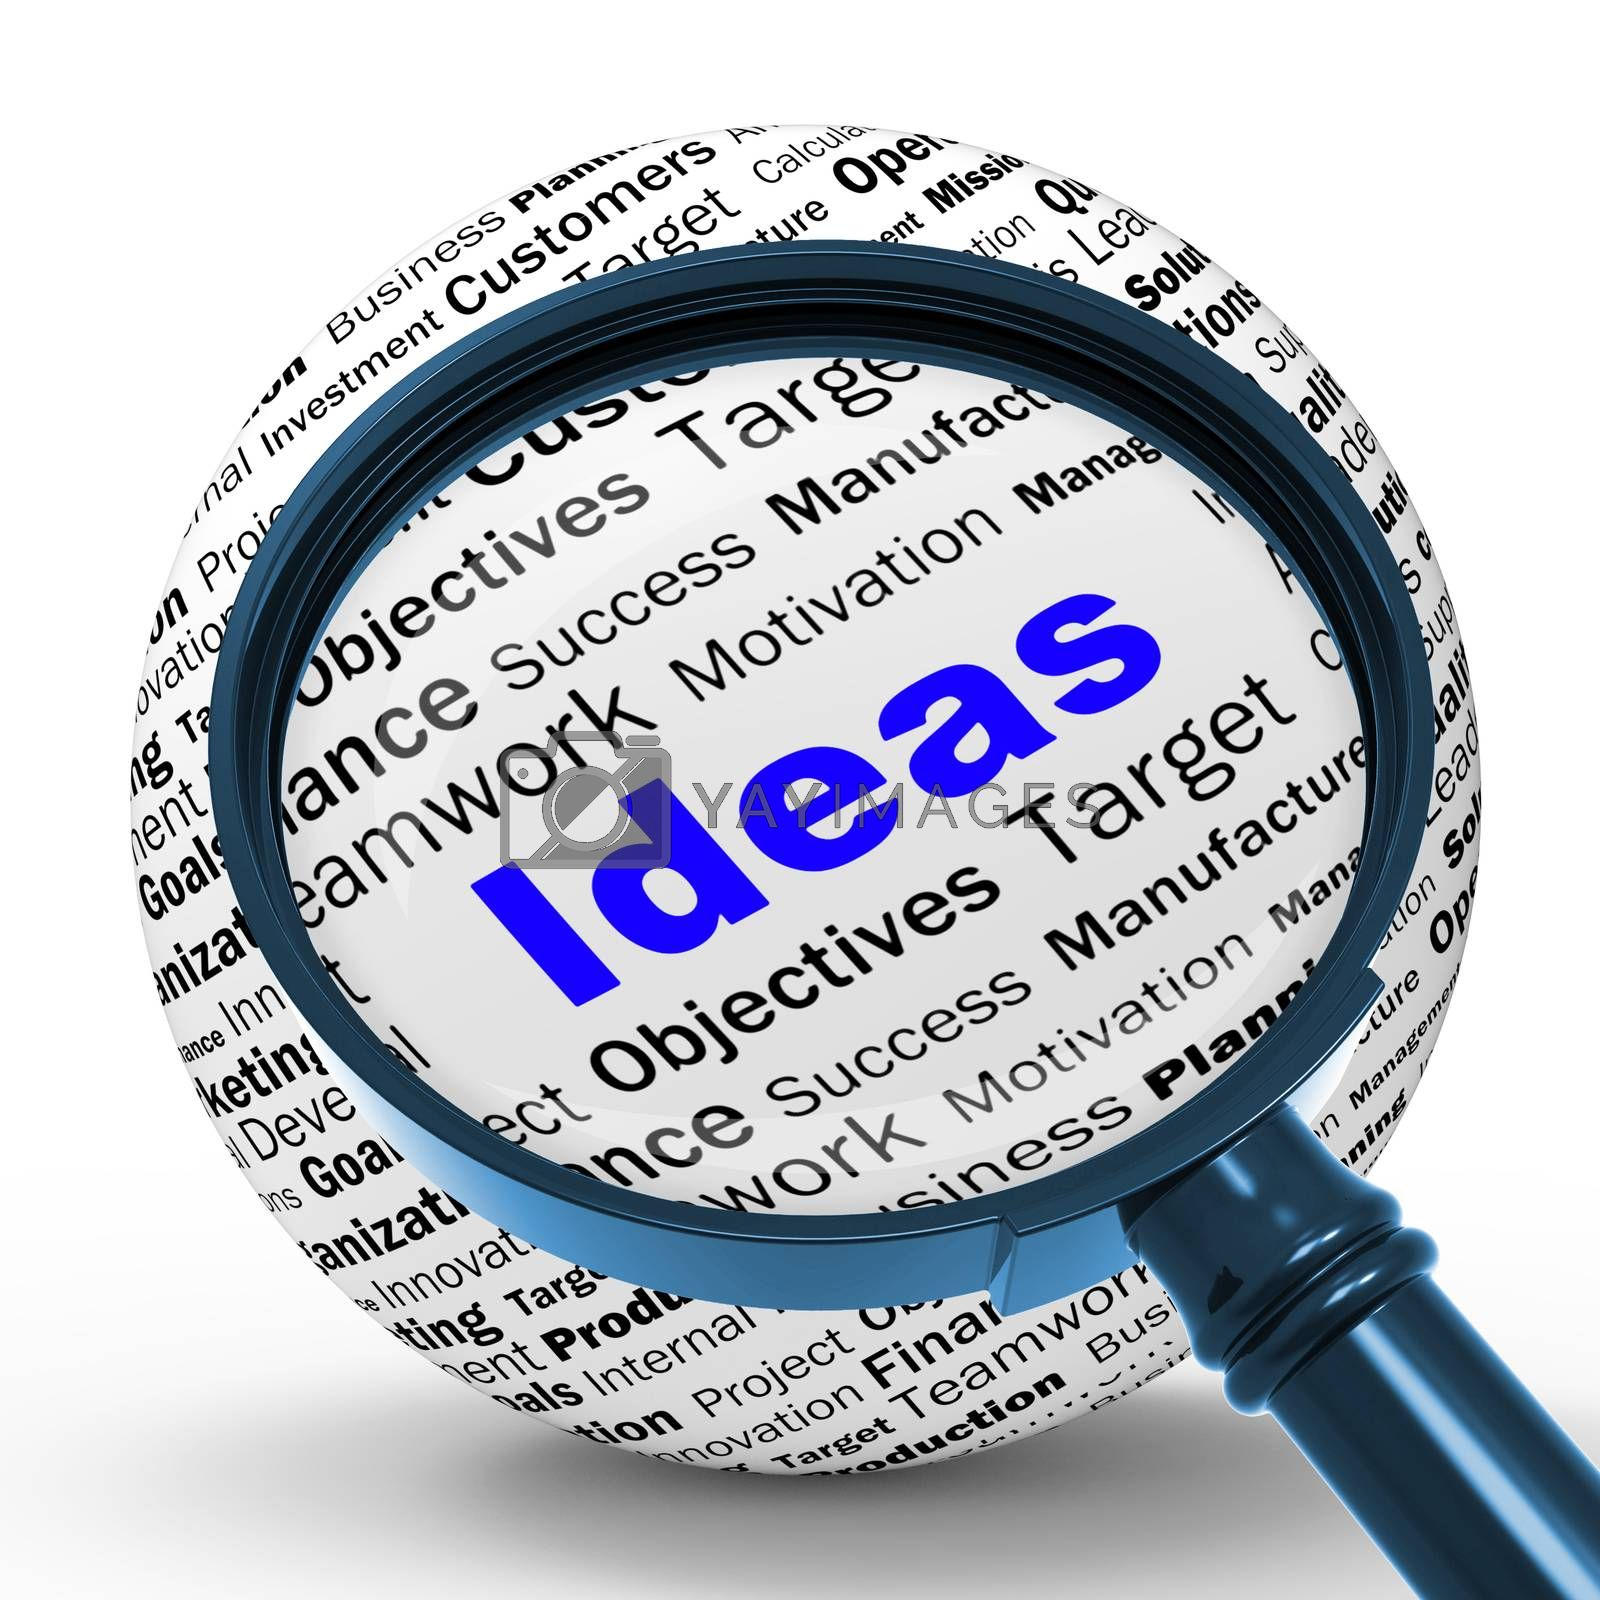 Ideas Magnifier Definition Shows Creativity And Innovation by stuartmiles